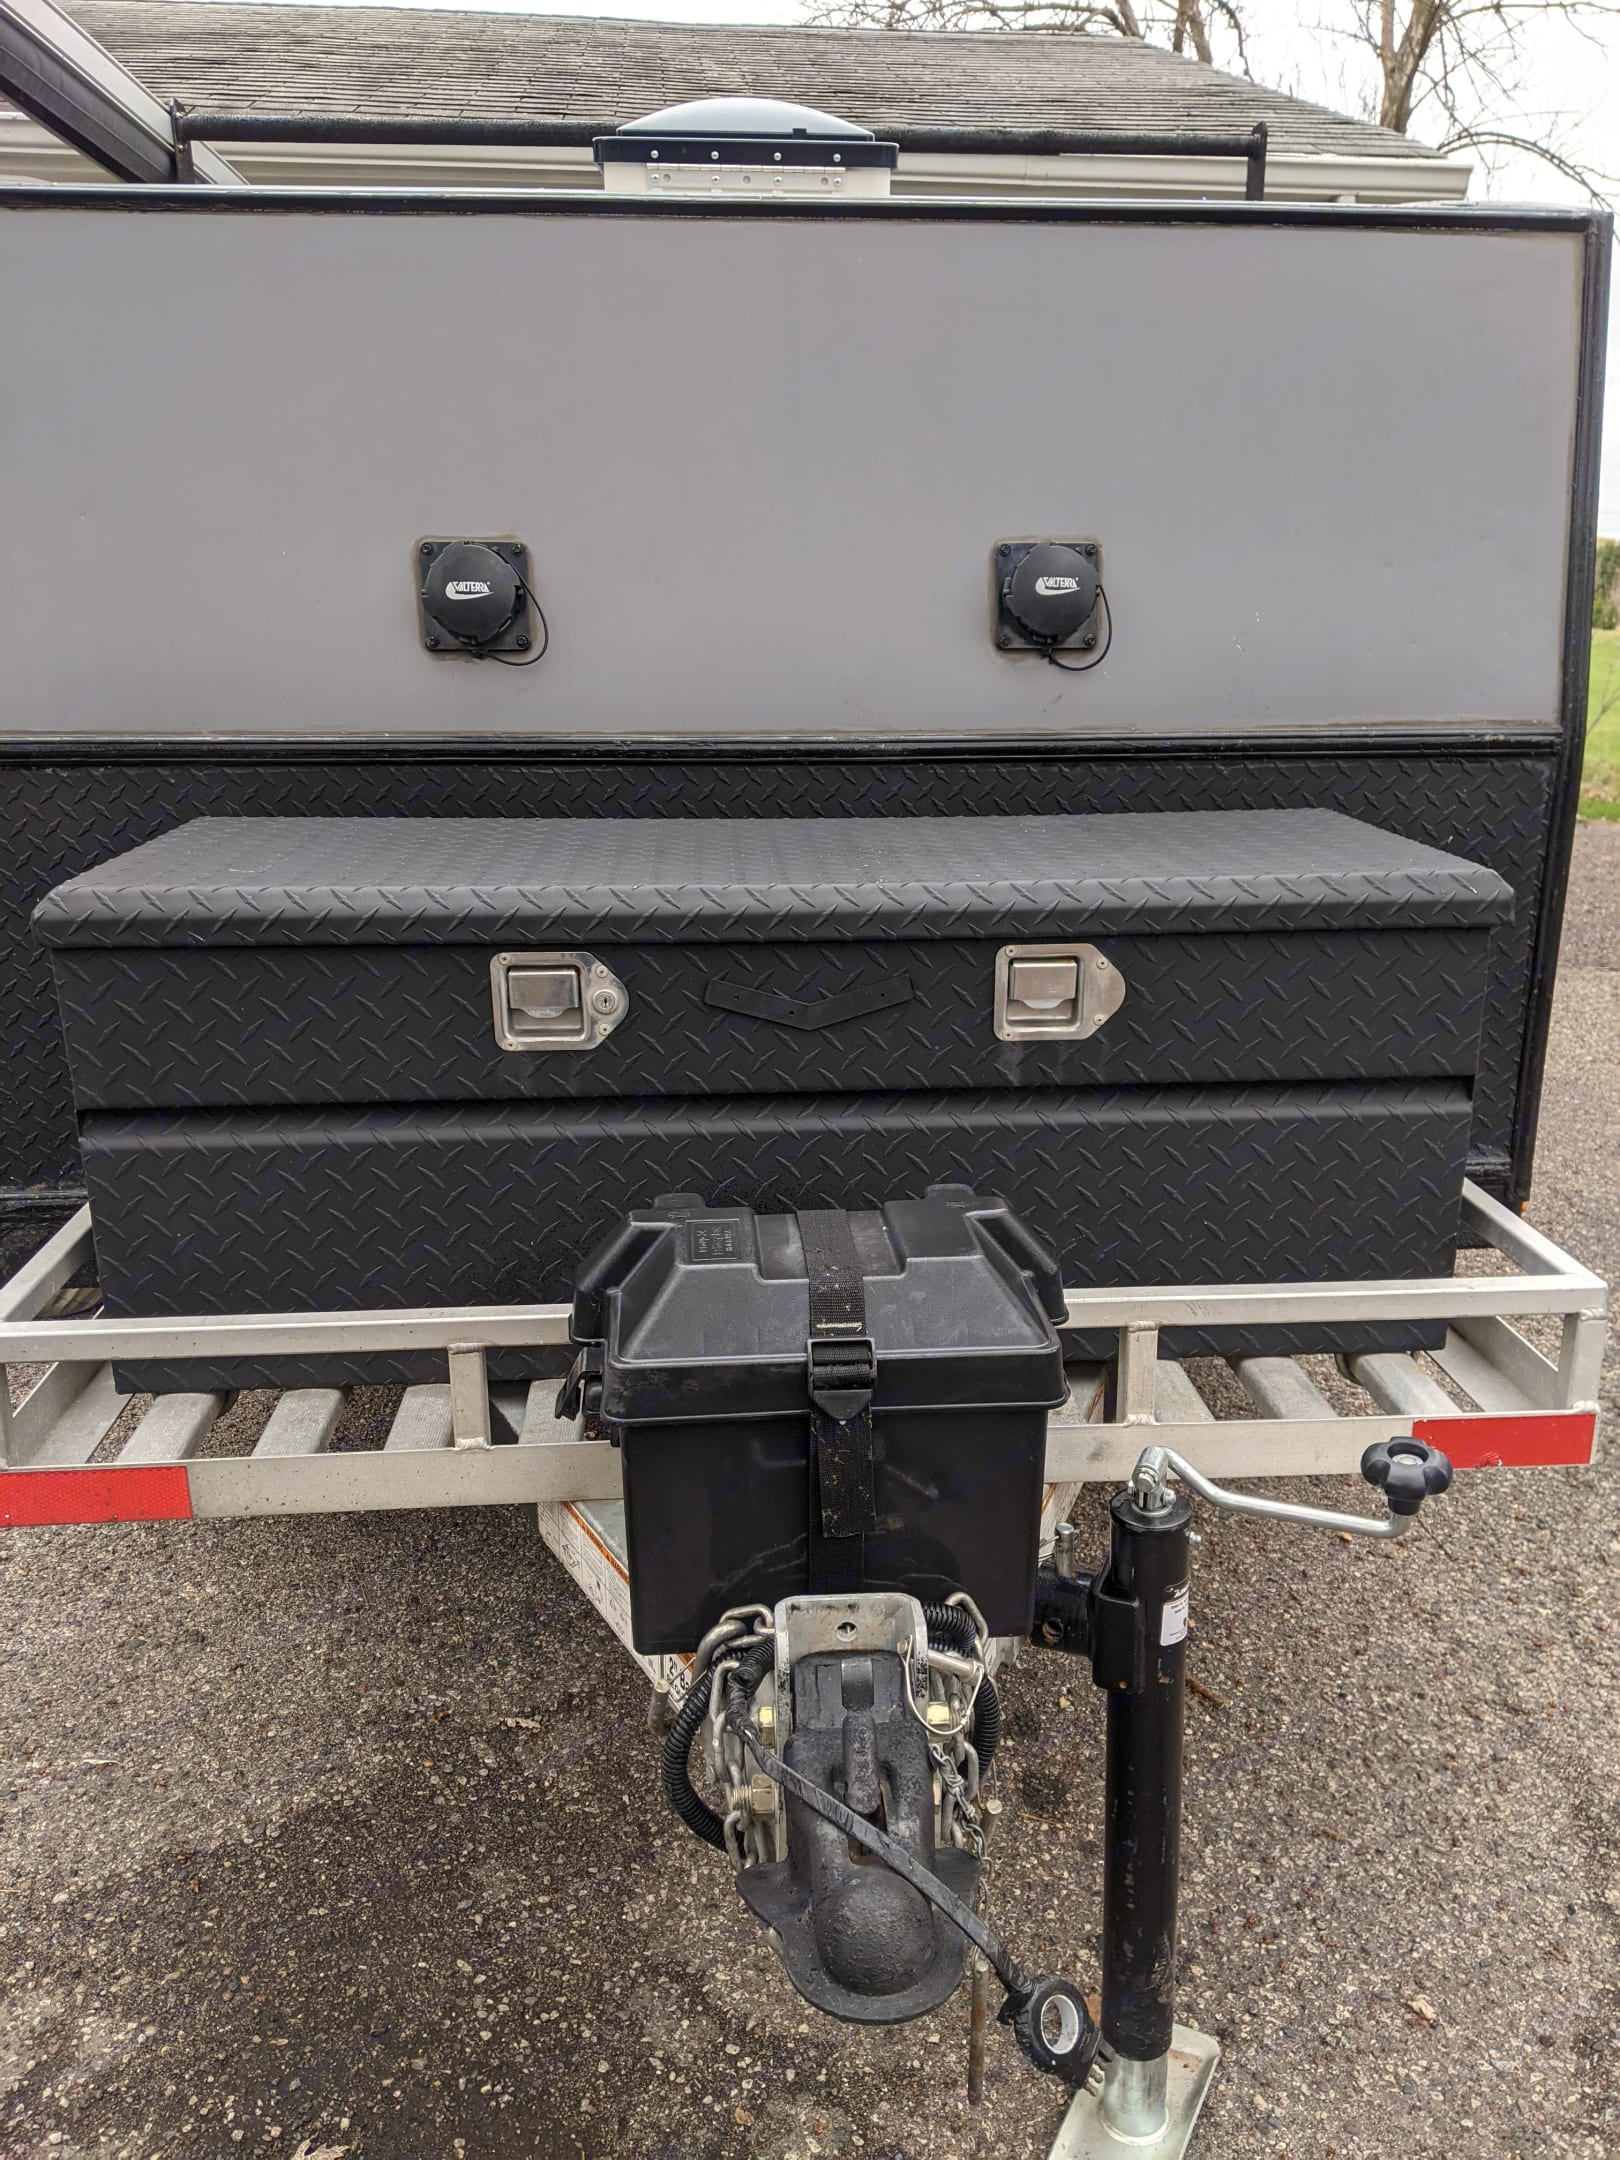 Watertight locking storage, battery box for ceiling fan. Hand crank jack to level camper.. 2018